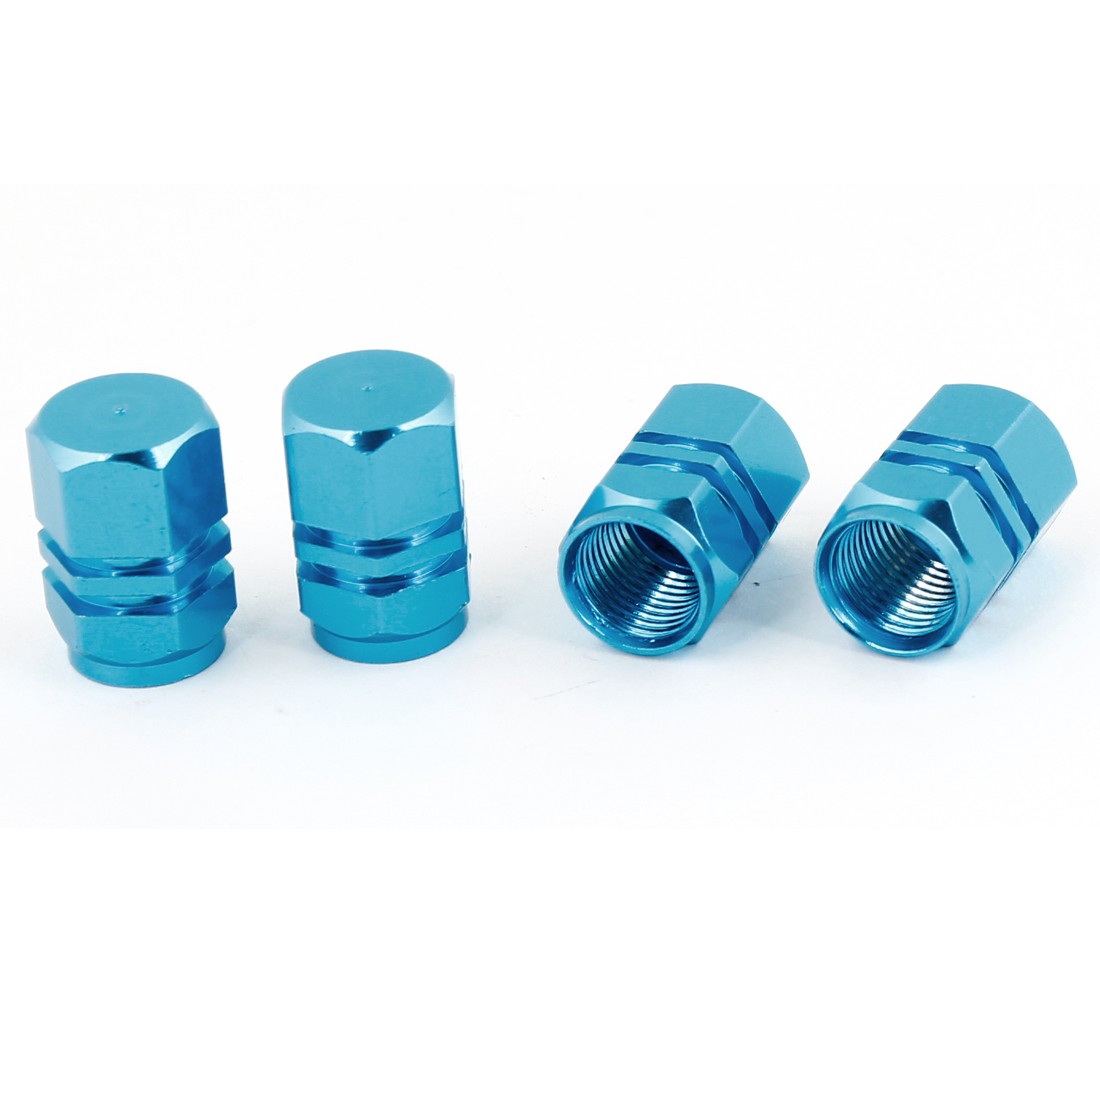 4pcs Hexagon Tyre Tire Valve Stems Caps Cover Blue for Vehicle Car